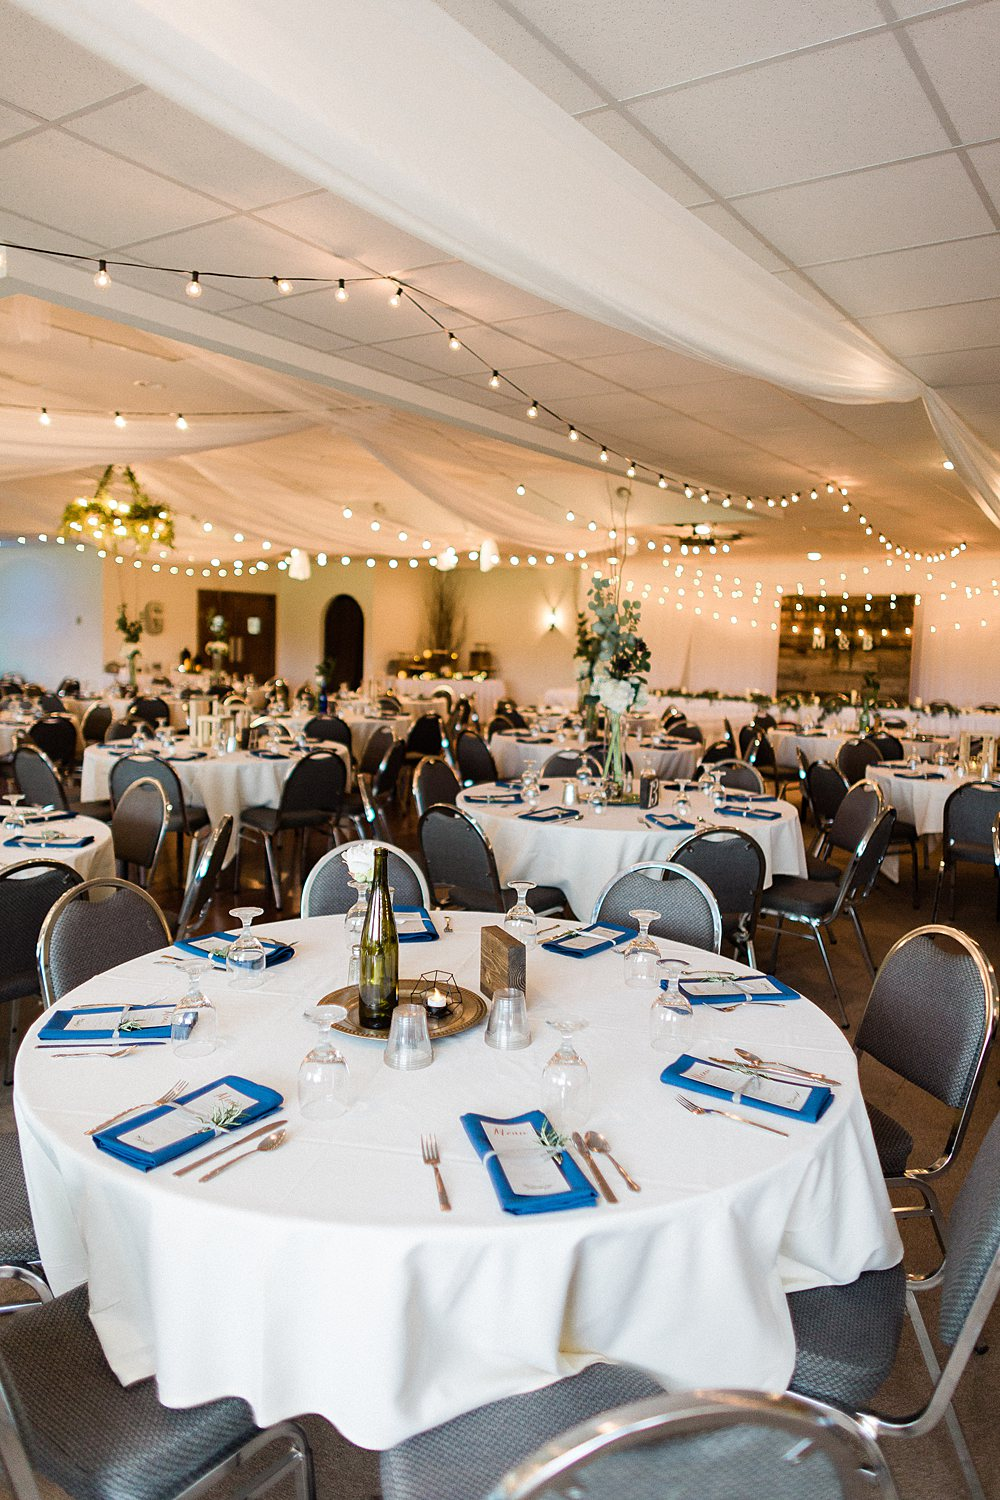 North_Central_Wisconsin_Event_Wedding_Venues_Fall_Weddings_The_Bailiwick_Venue_James-Stokes-Photography089.jpg